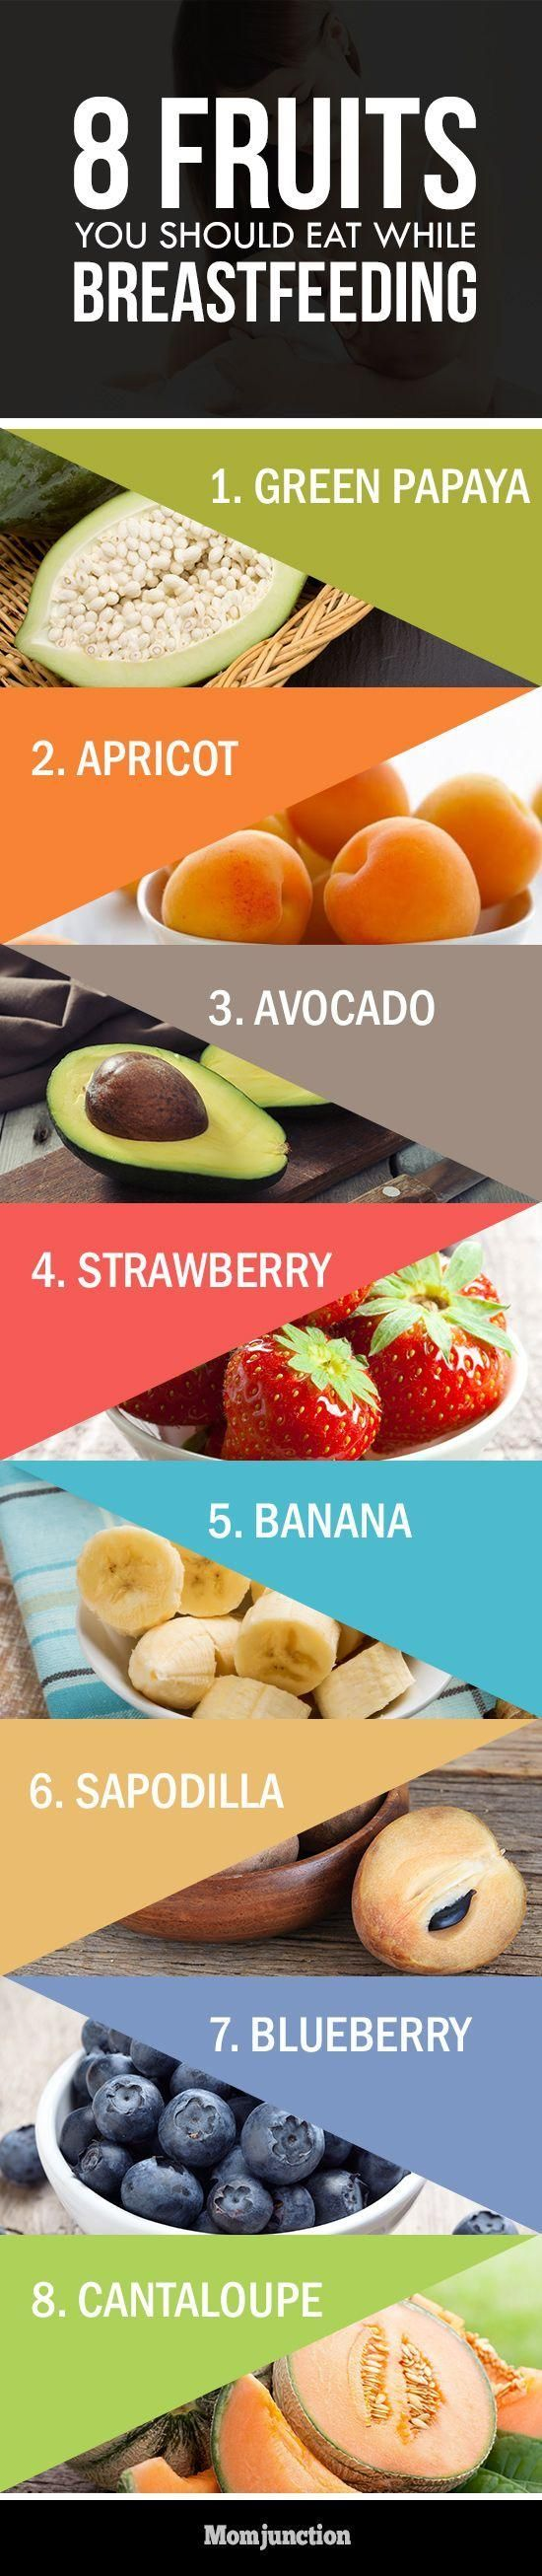 8 Best Fruits You Should Eat While Breastfeeding